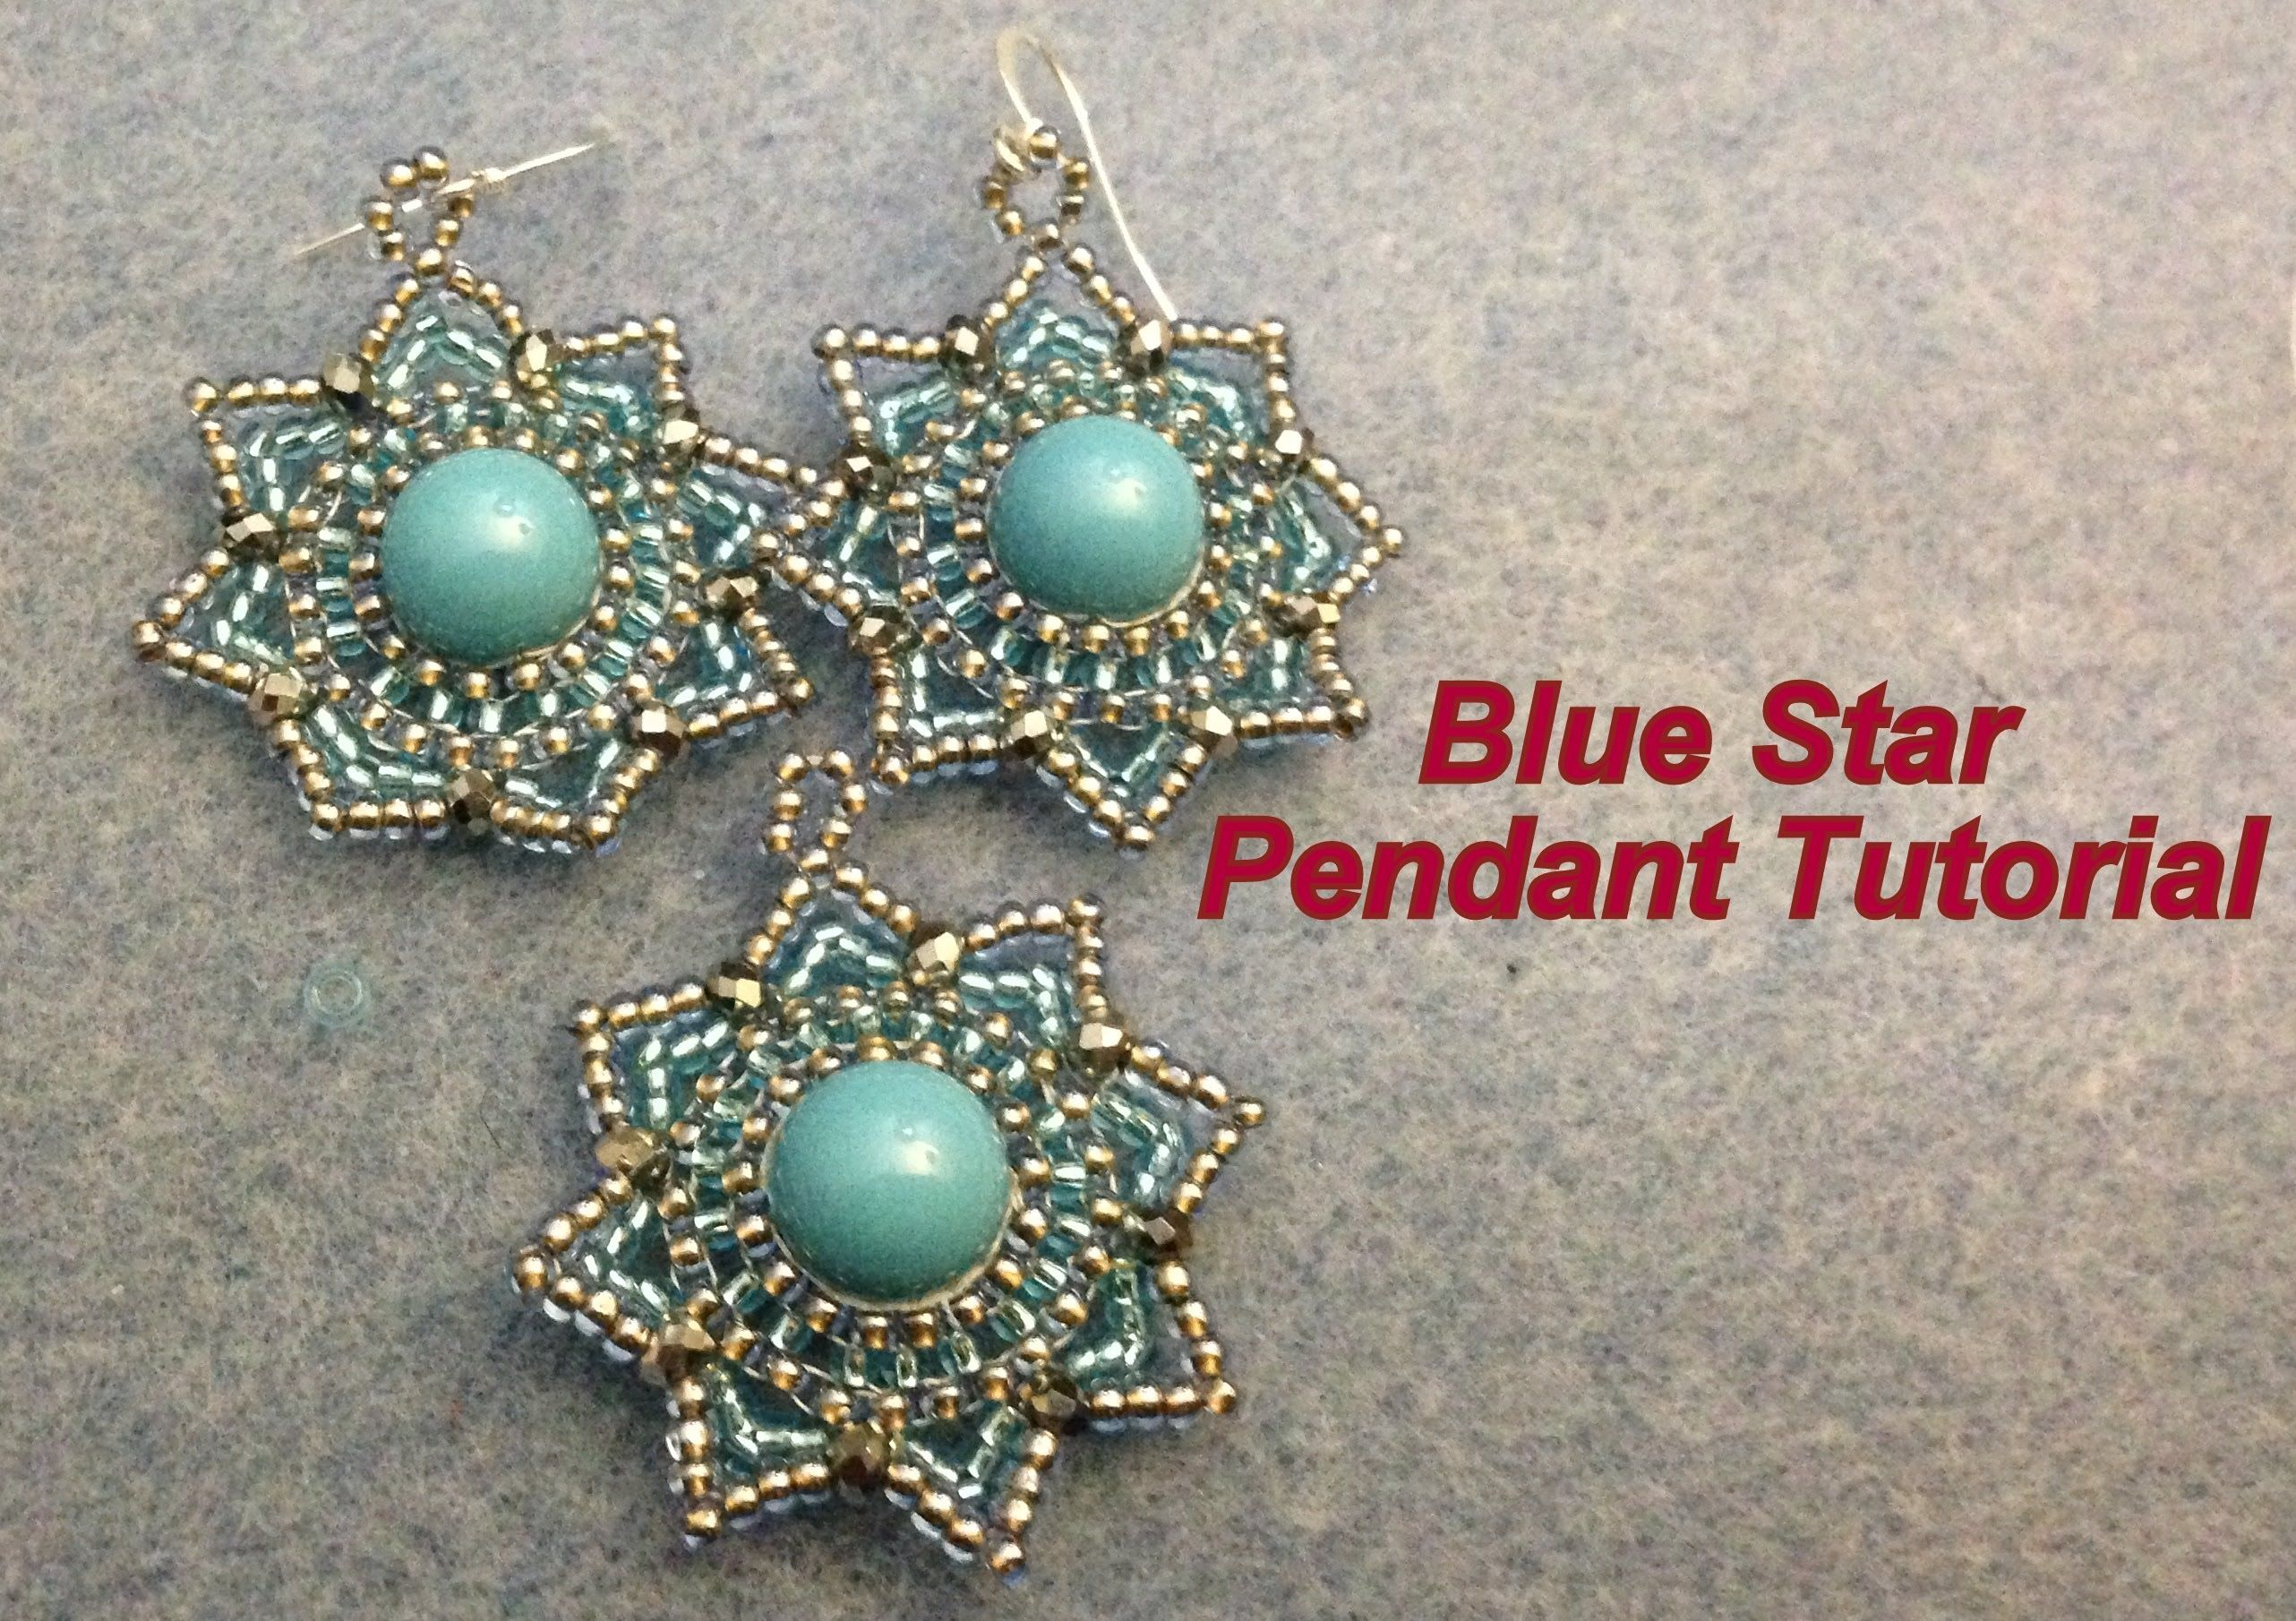 Video: Blue Star Pendant--Intermediate #Seed #Bead #Tutorias - flotte ørenringe i stjerneform - turkis-sølv-klar